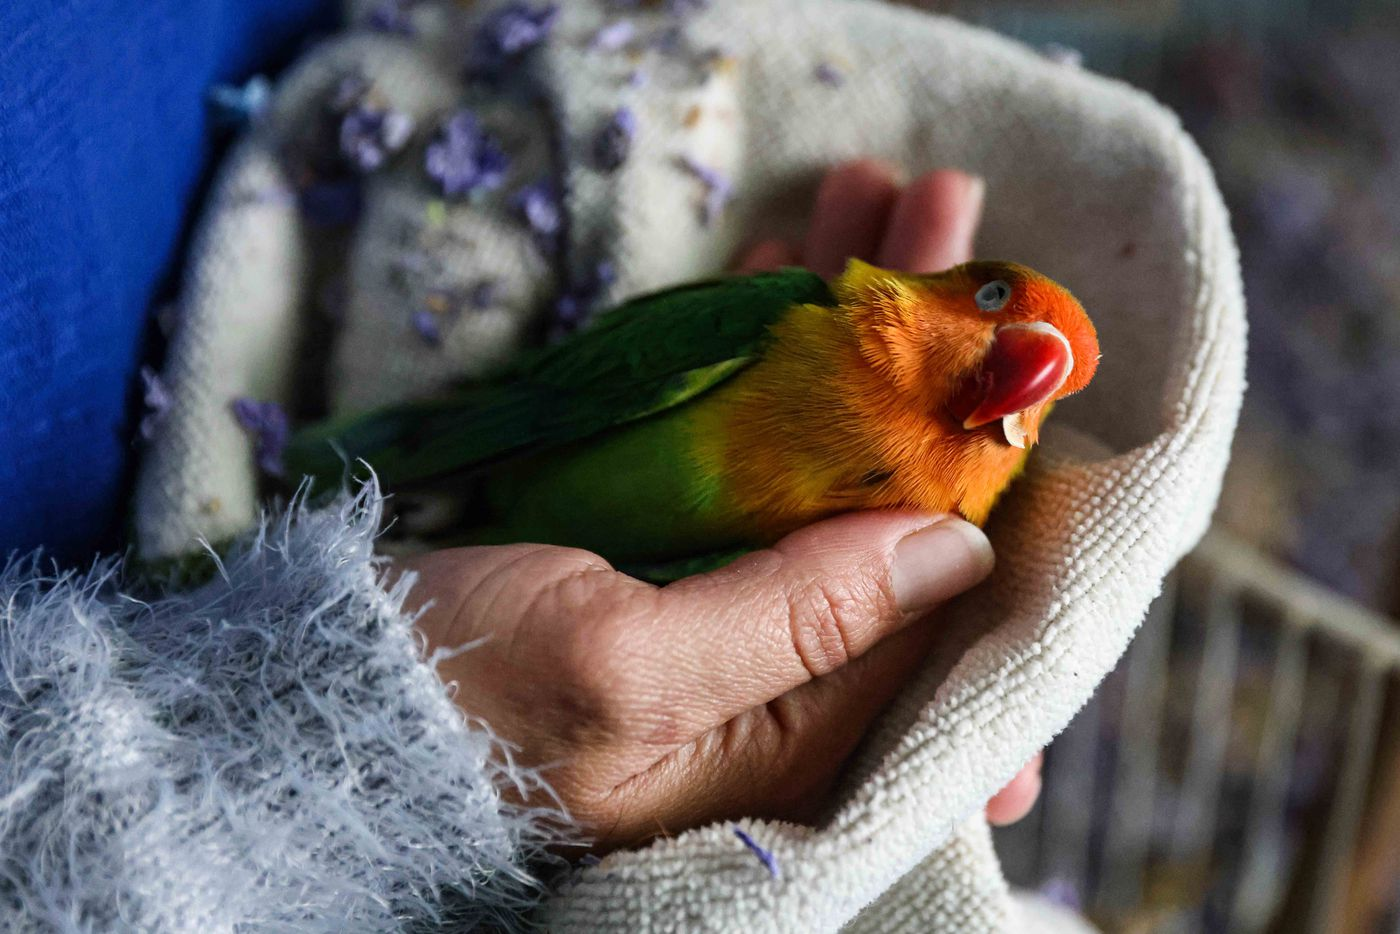 Marleny Almendarez, 38, holds their pet bird, Little Rainbow, who appeared dead after temperatures dropped in their home following snowstorm Uri. Almendarez decided to spend Tuesday night with her two children, one of them on the spectrum, in a bus that the city has provided as a warming center at Pleasant Oaks Recreation Center in Dallas on Wednesday, February 18, 2021.